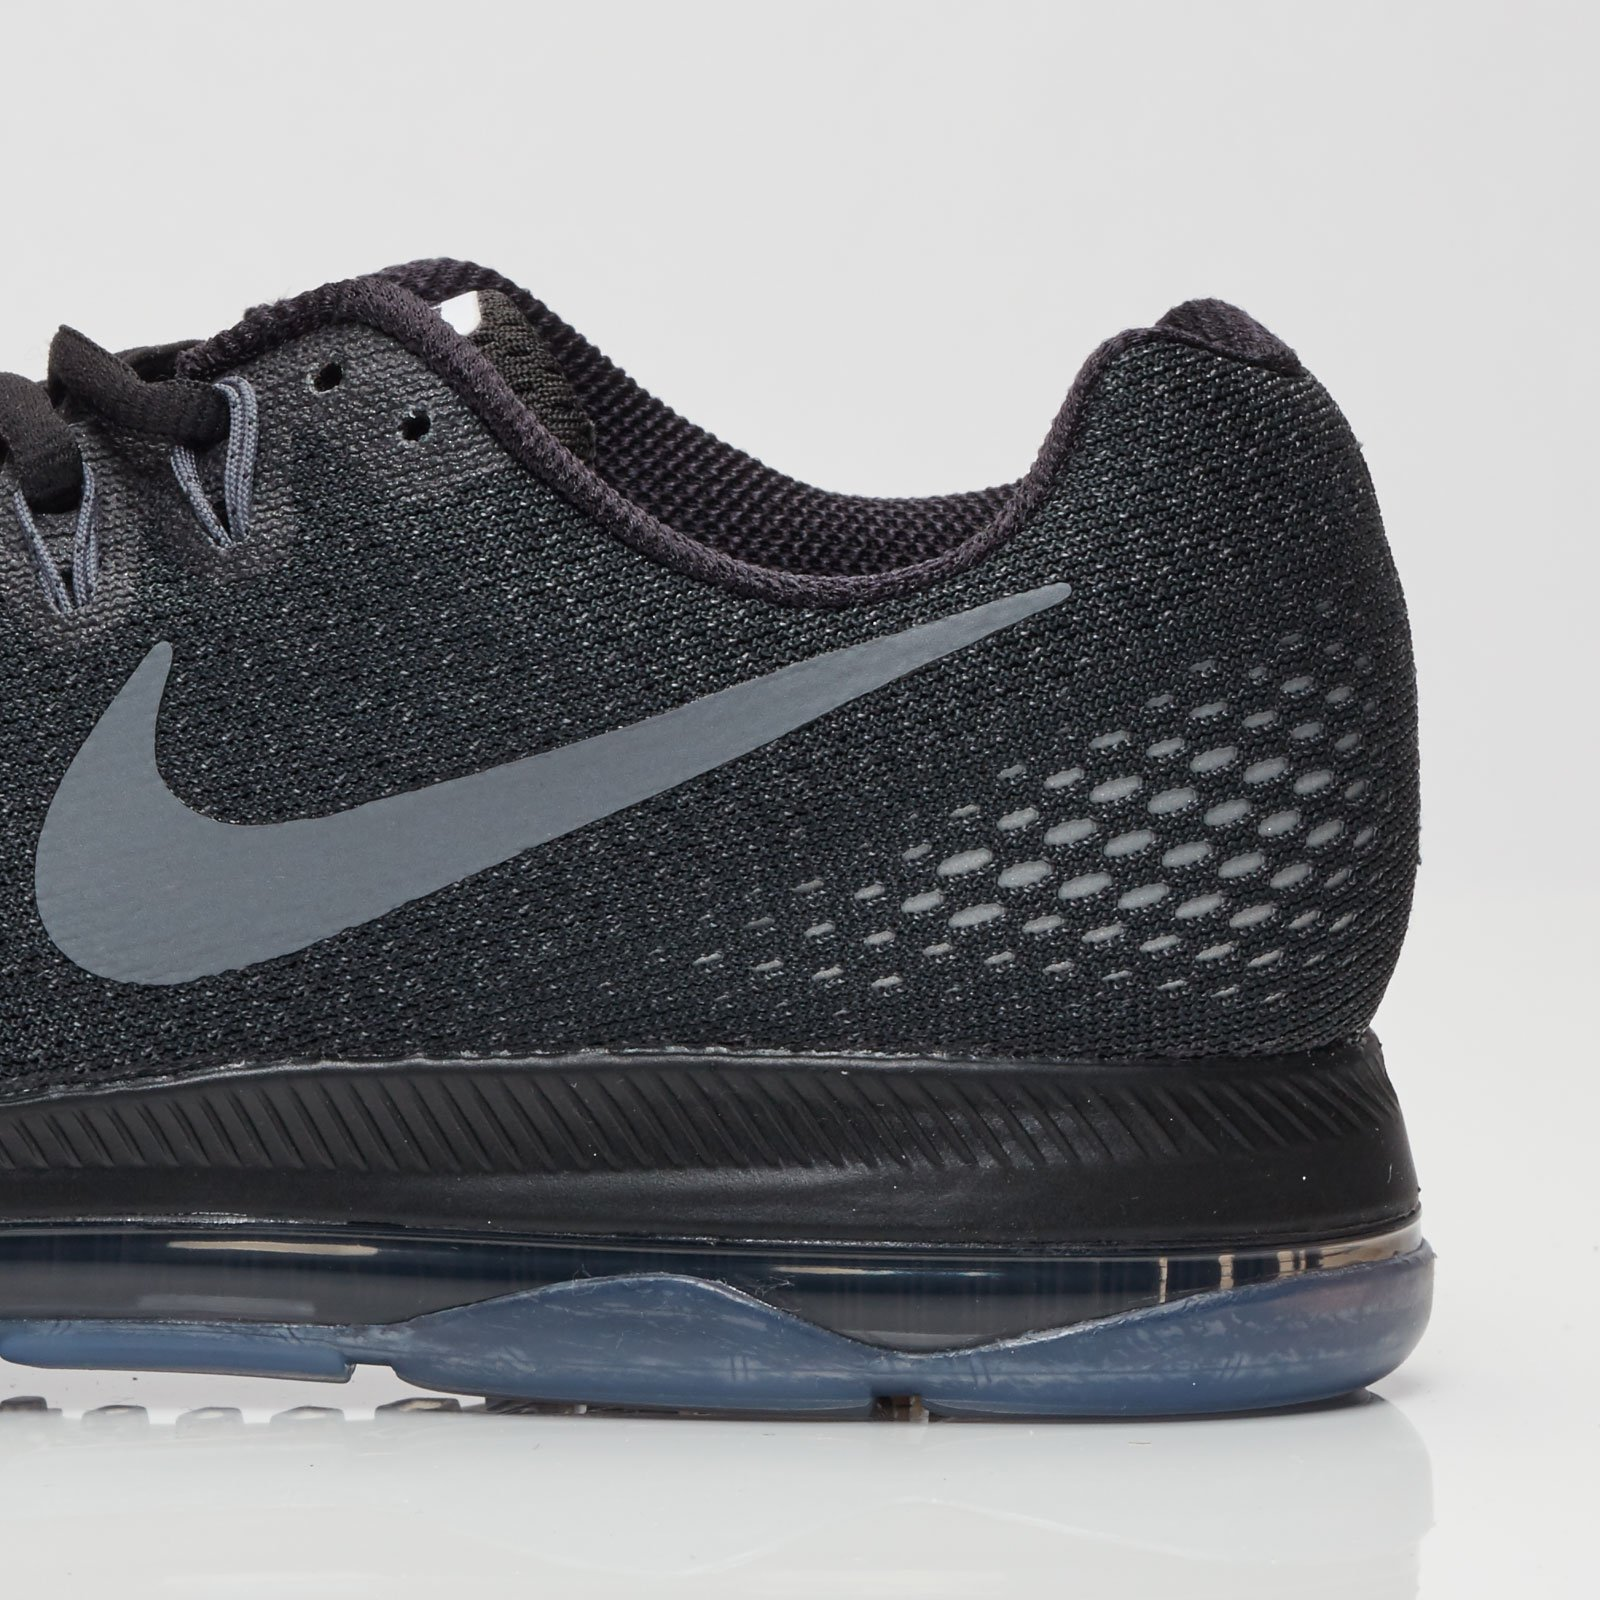 4da8d54066 Nike Wmns Zoom All Out Low - 878671-001 - Sneakersnstuff